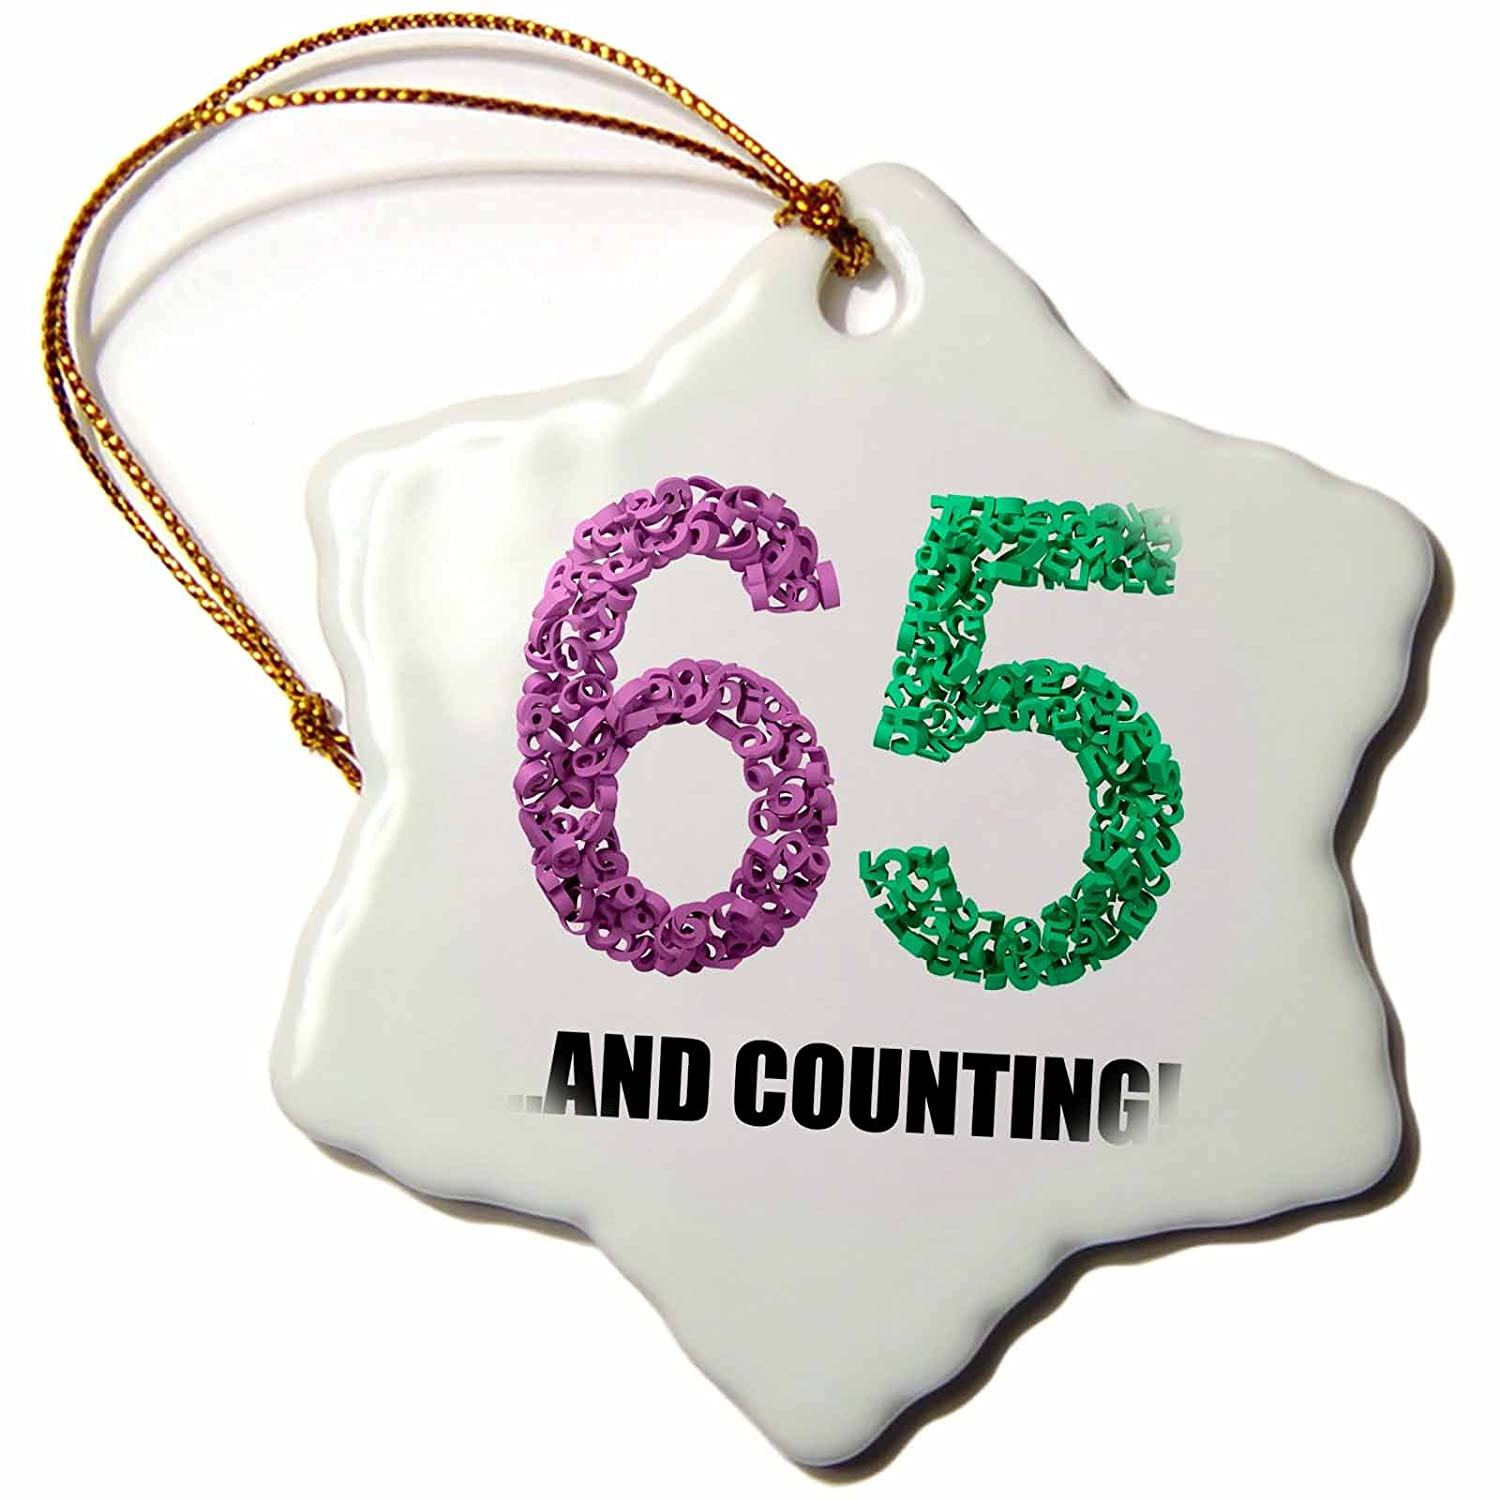 Intricate Numbers Design 65th Anniversary ORN/_238555/_1 - 3 inch Snowflake Porcelain Ornament and Counting Illustrations 3dRose Carsten Reisinger